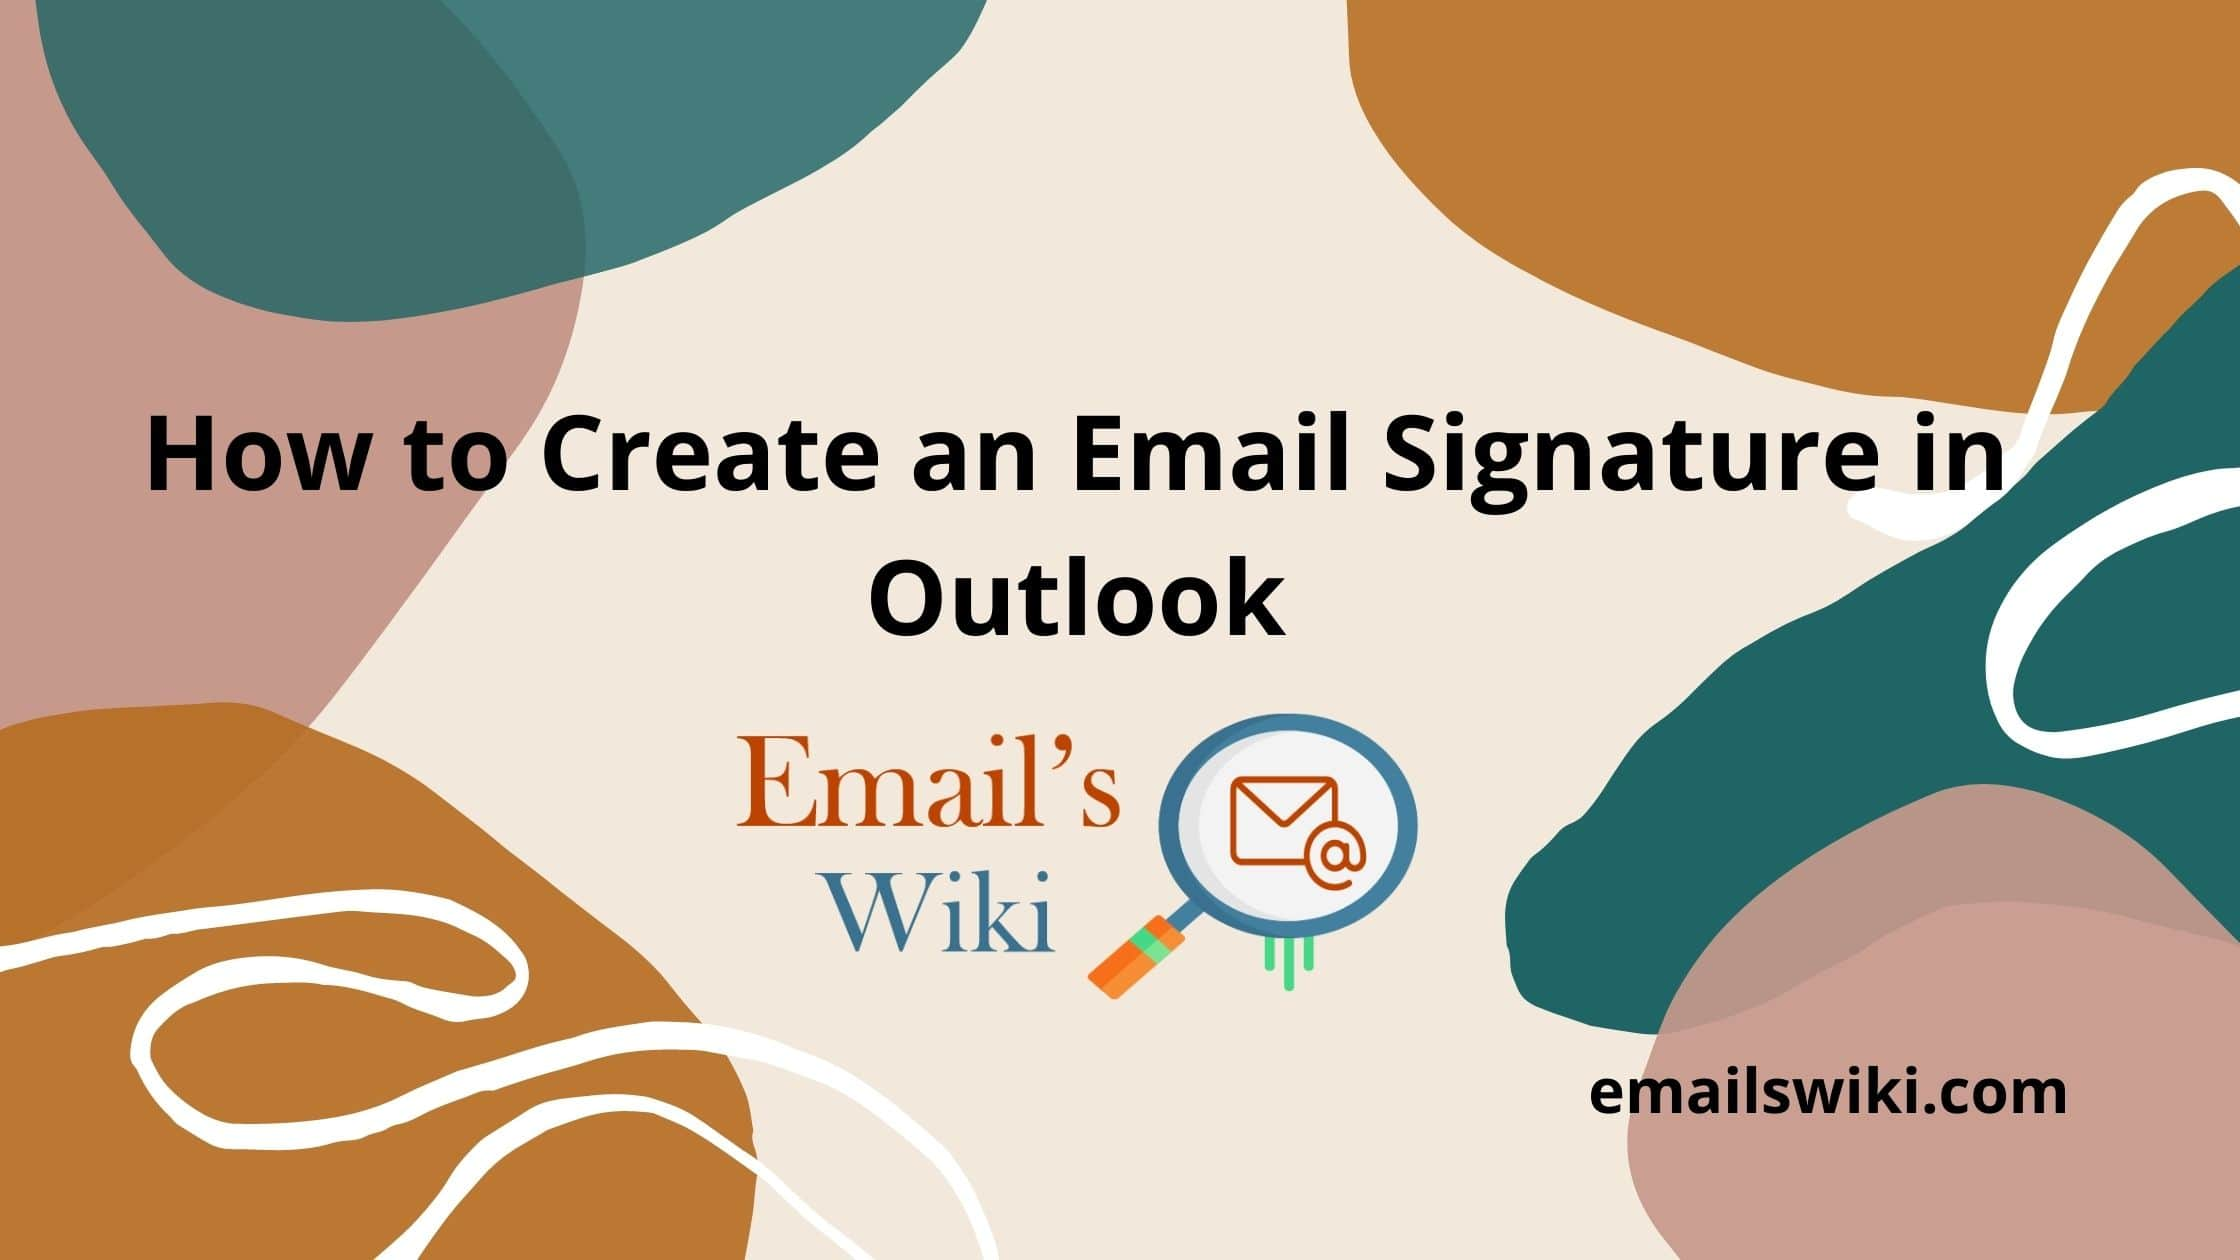 Create an Email Signature in Outlook